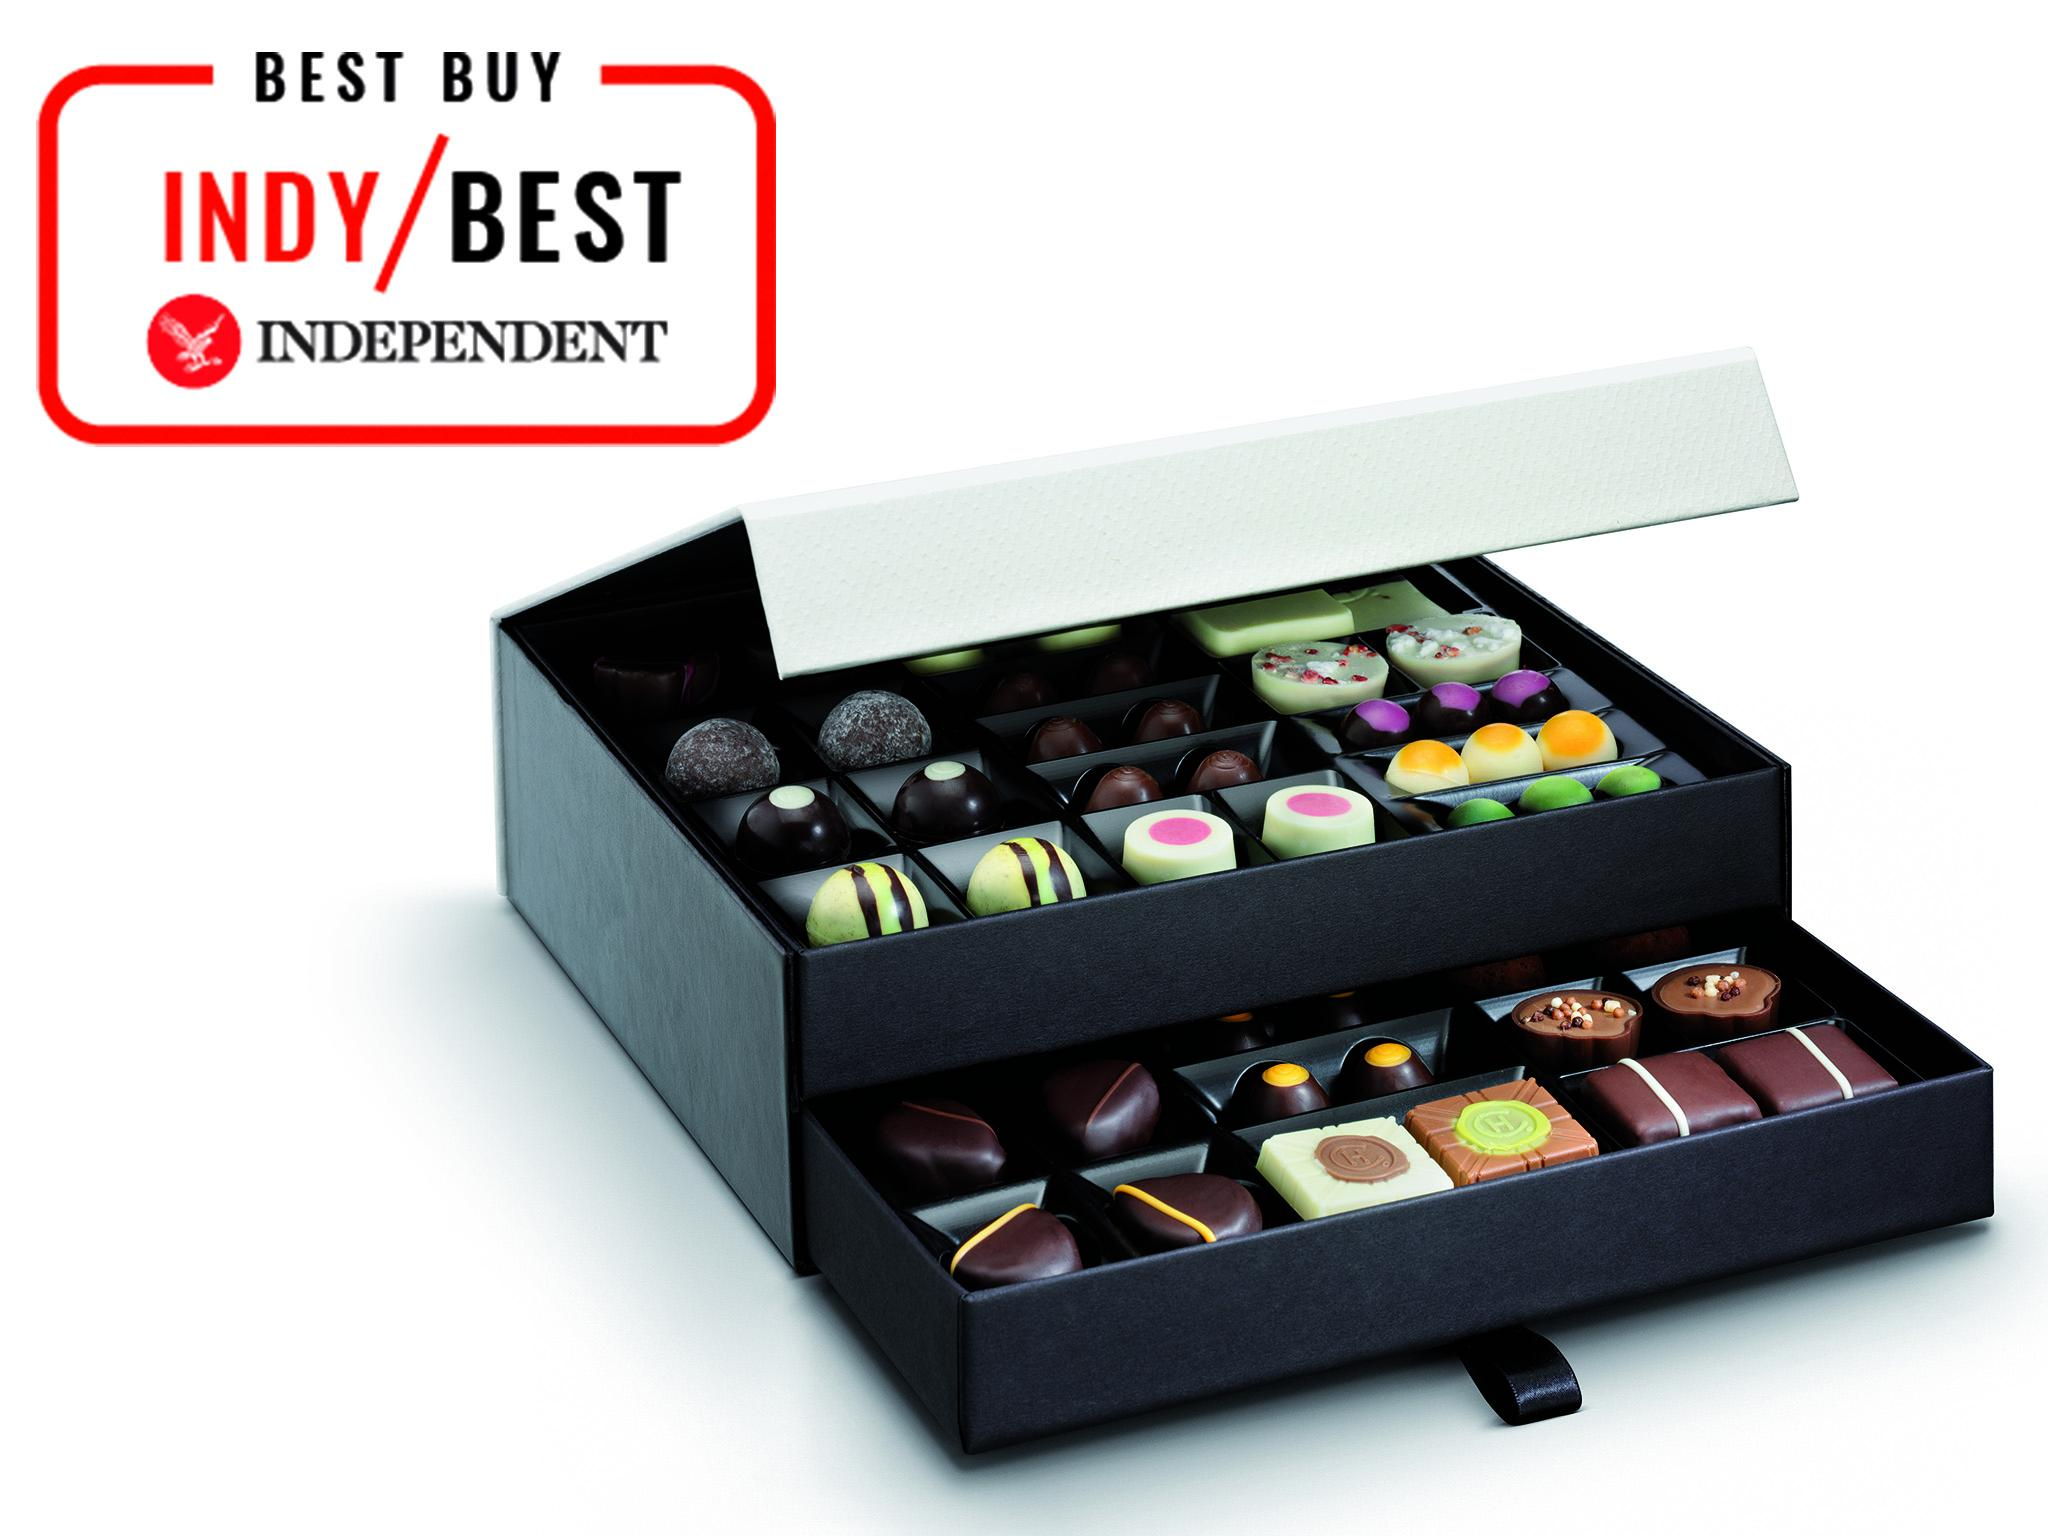 14 Best Luxury Chocolate Boxes The Independent